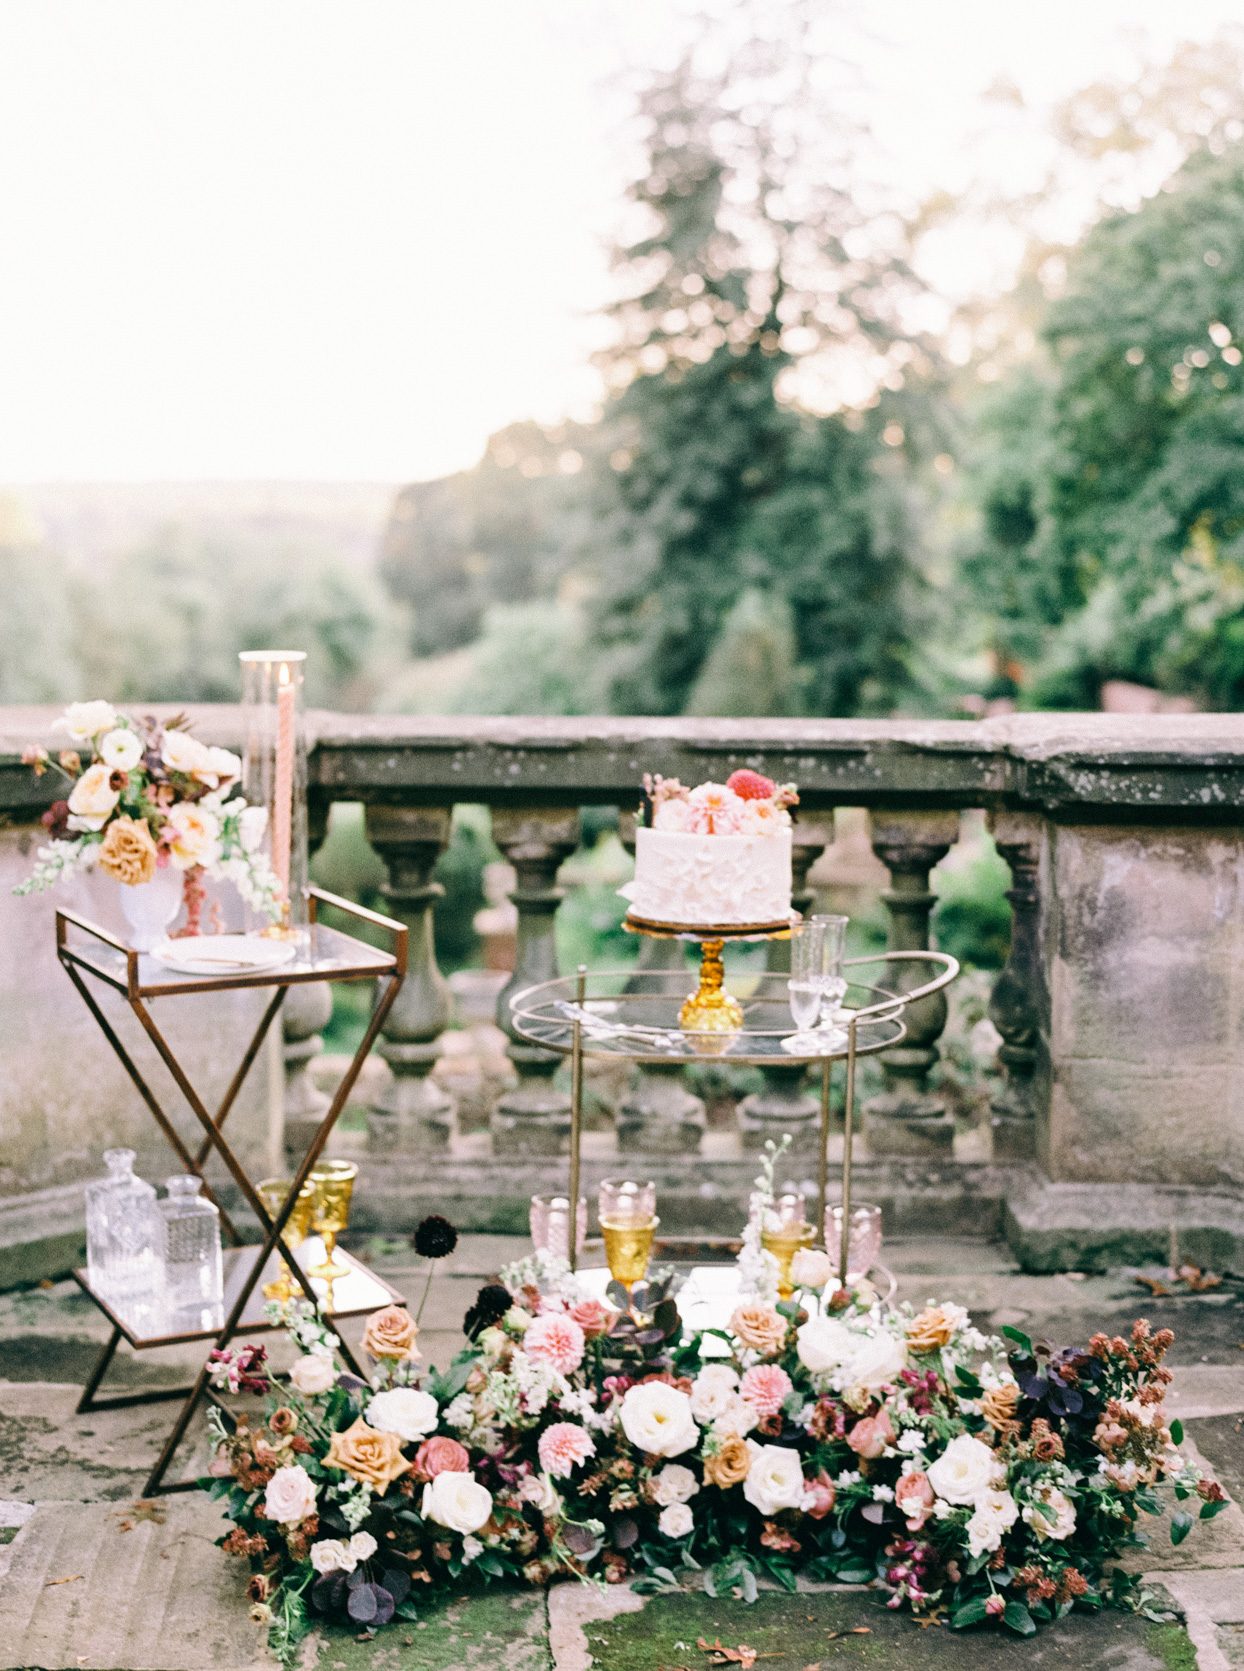 wedding cake on gold and glass cart sitting on balcony with flowers